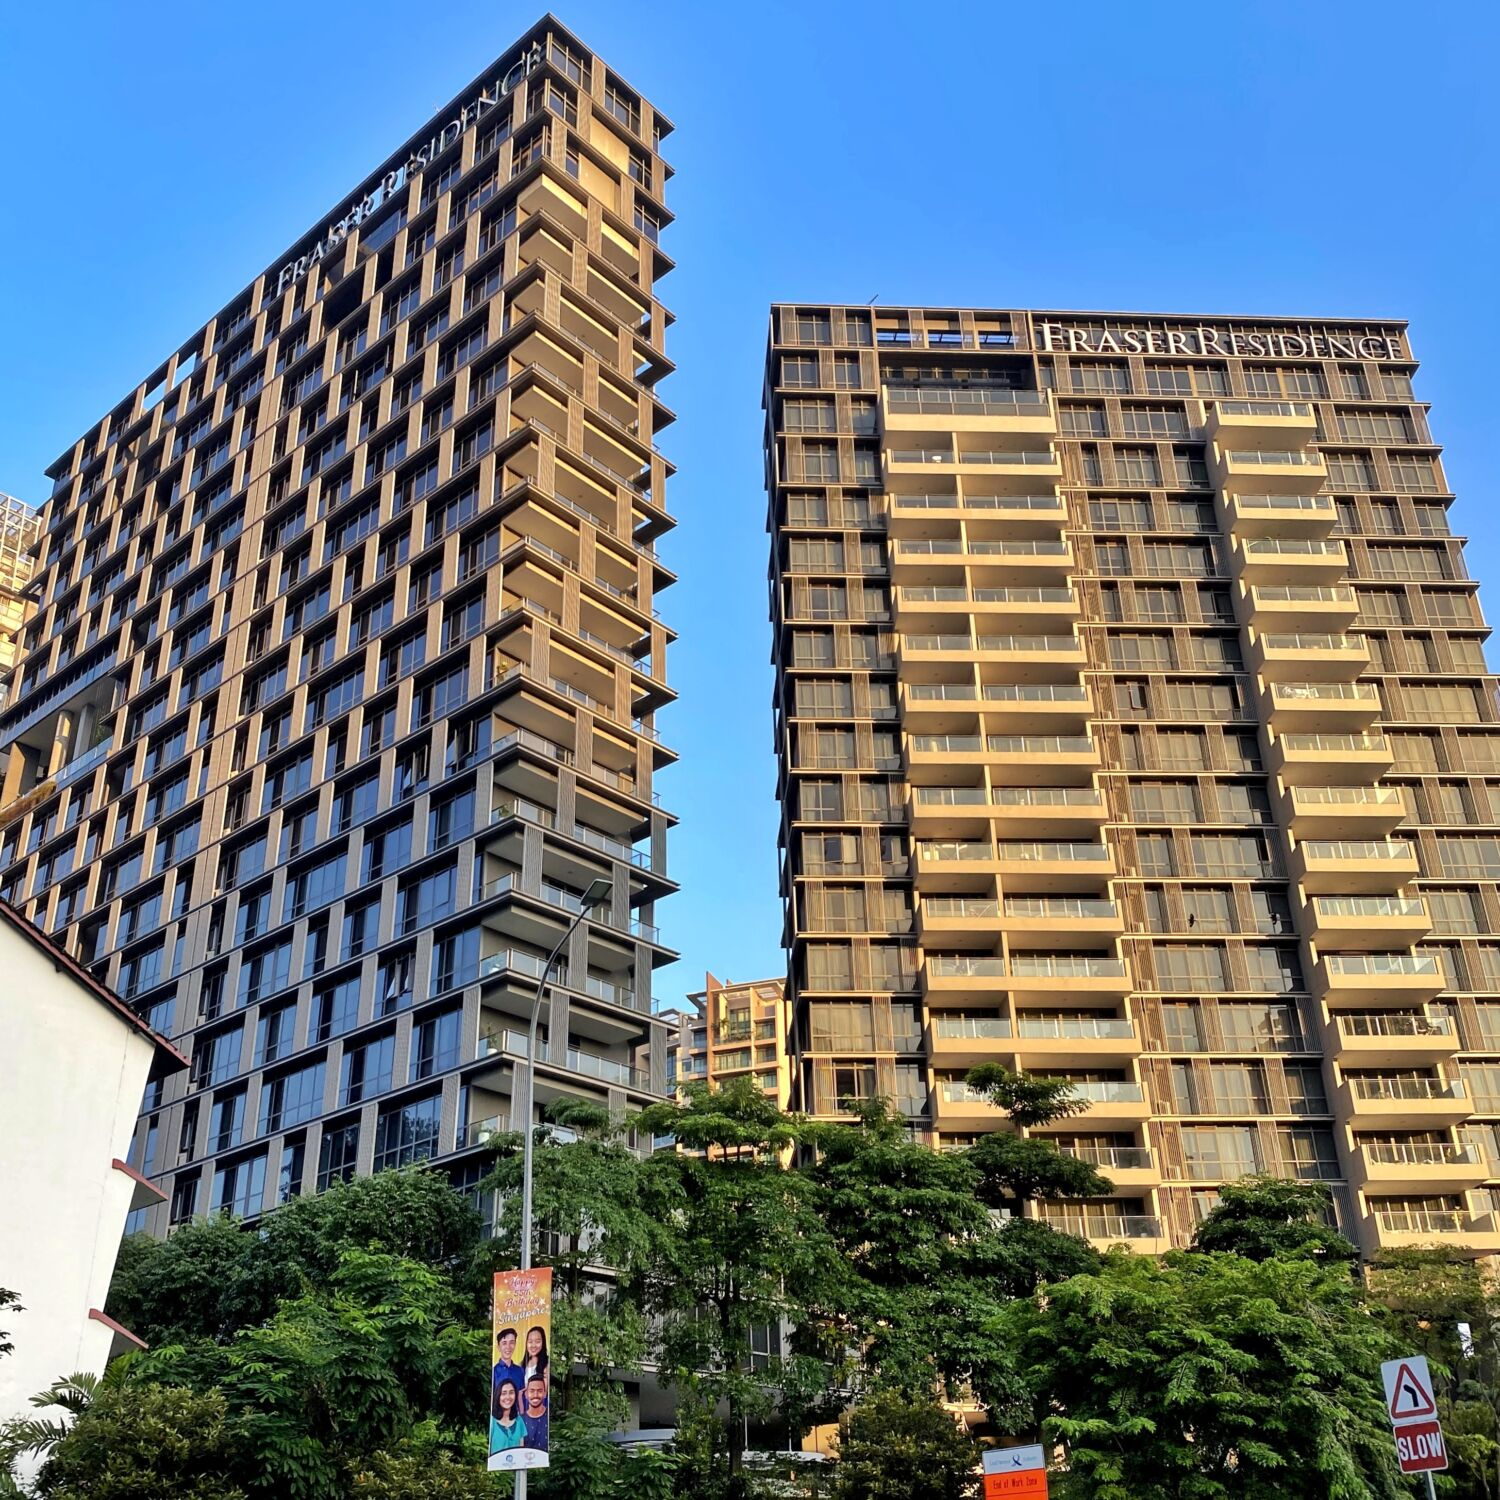 MFraser Residence Orchard Singapore Tower 1 and 2